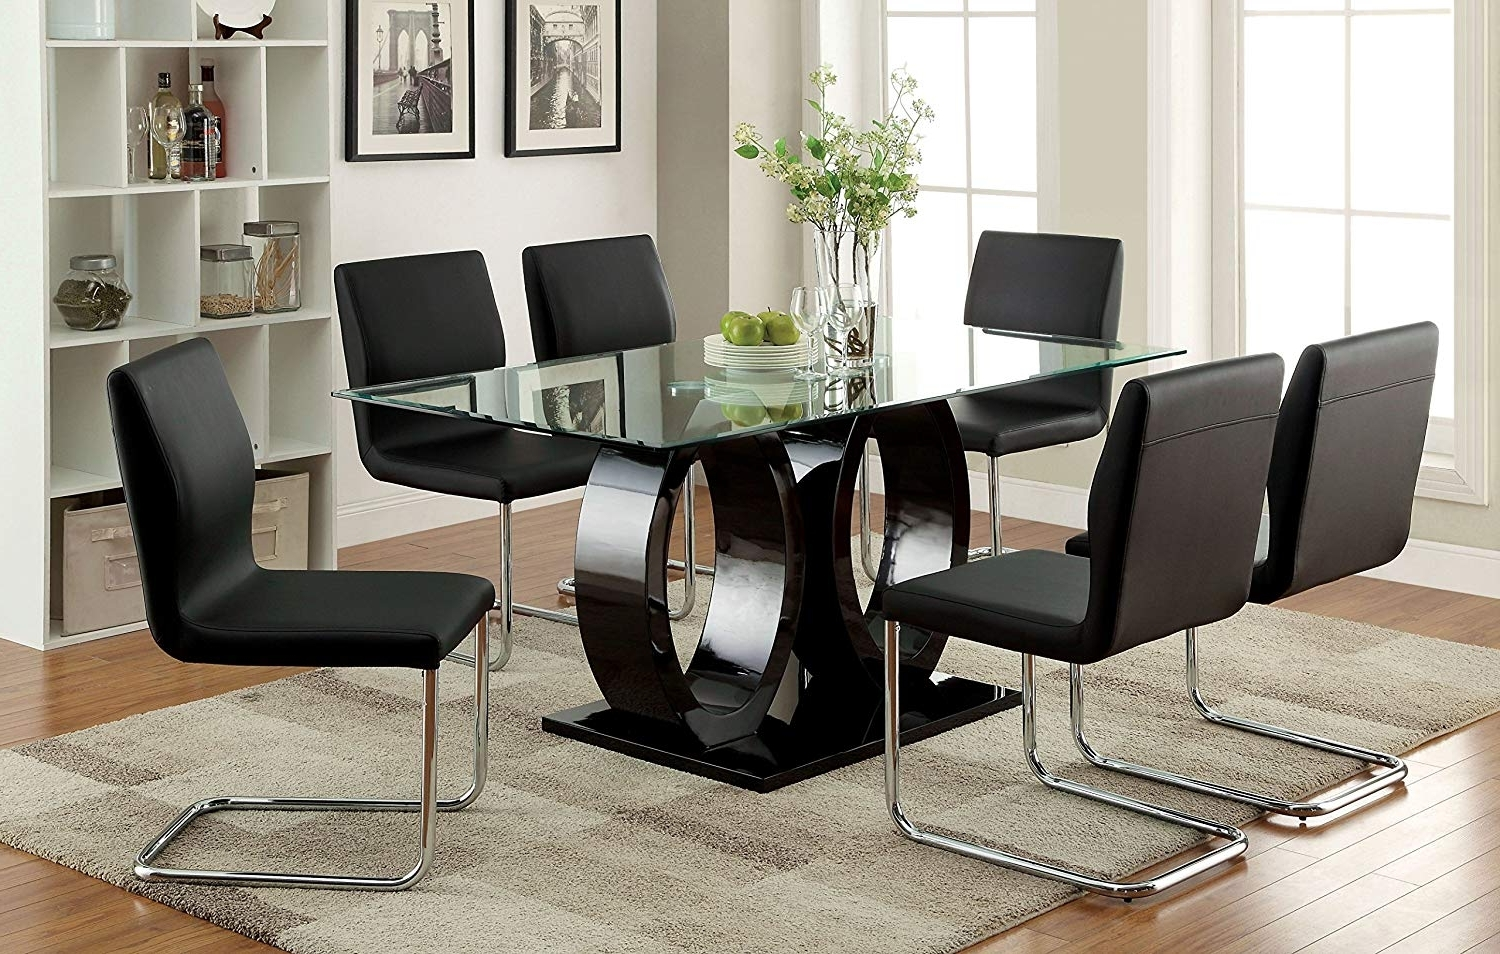 Amazon – Furniture Of America Quezon 7 Piece Glass Top Double Pertaining To Latest Dining Room Glass Tables Sets (View 2 of 25)